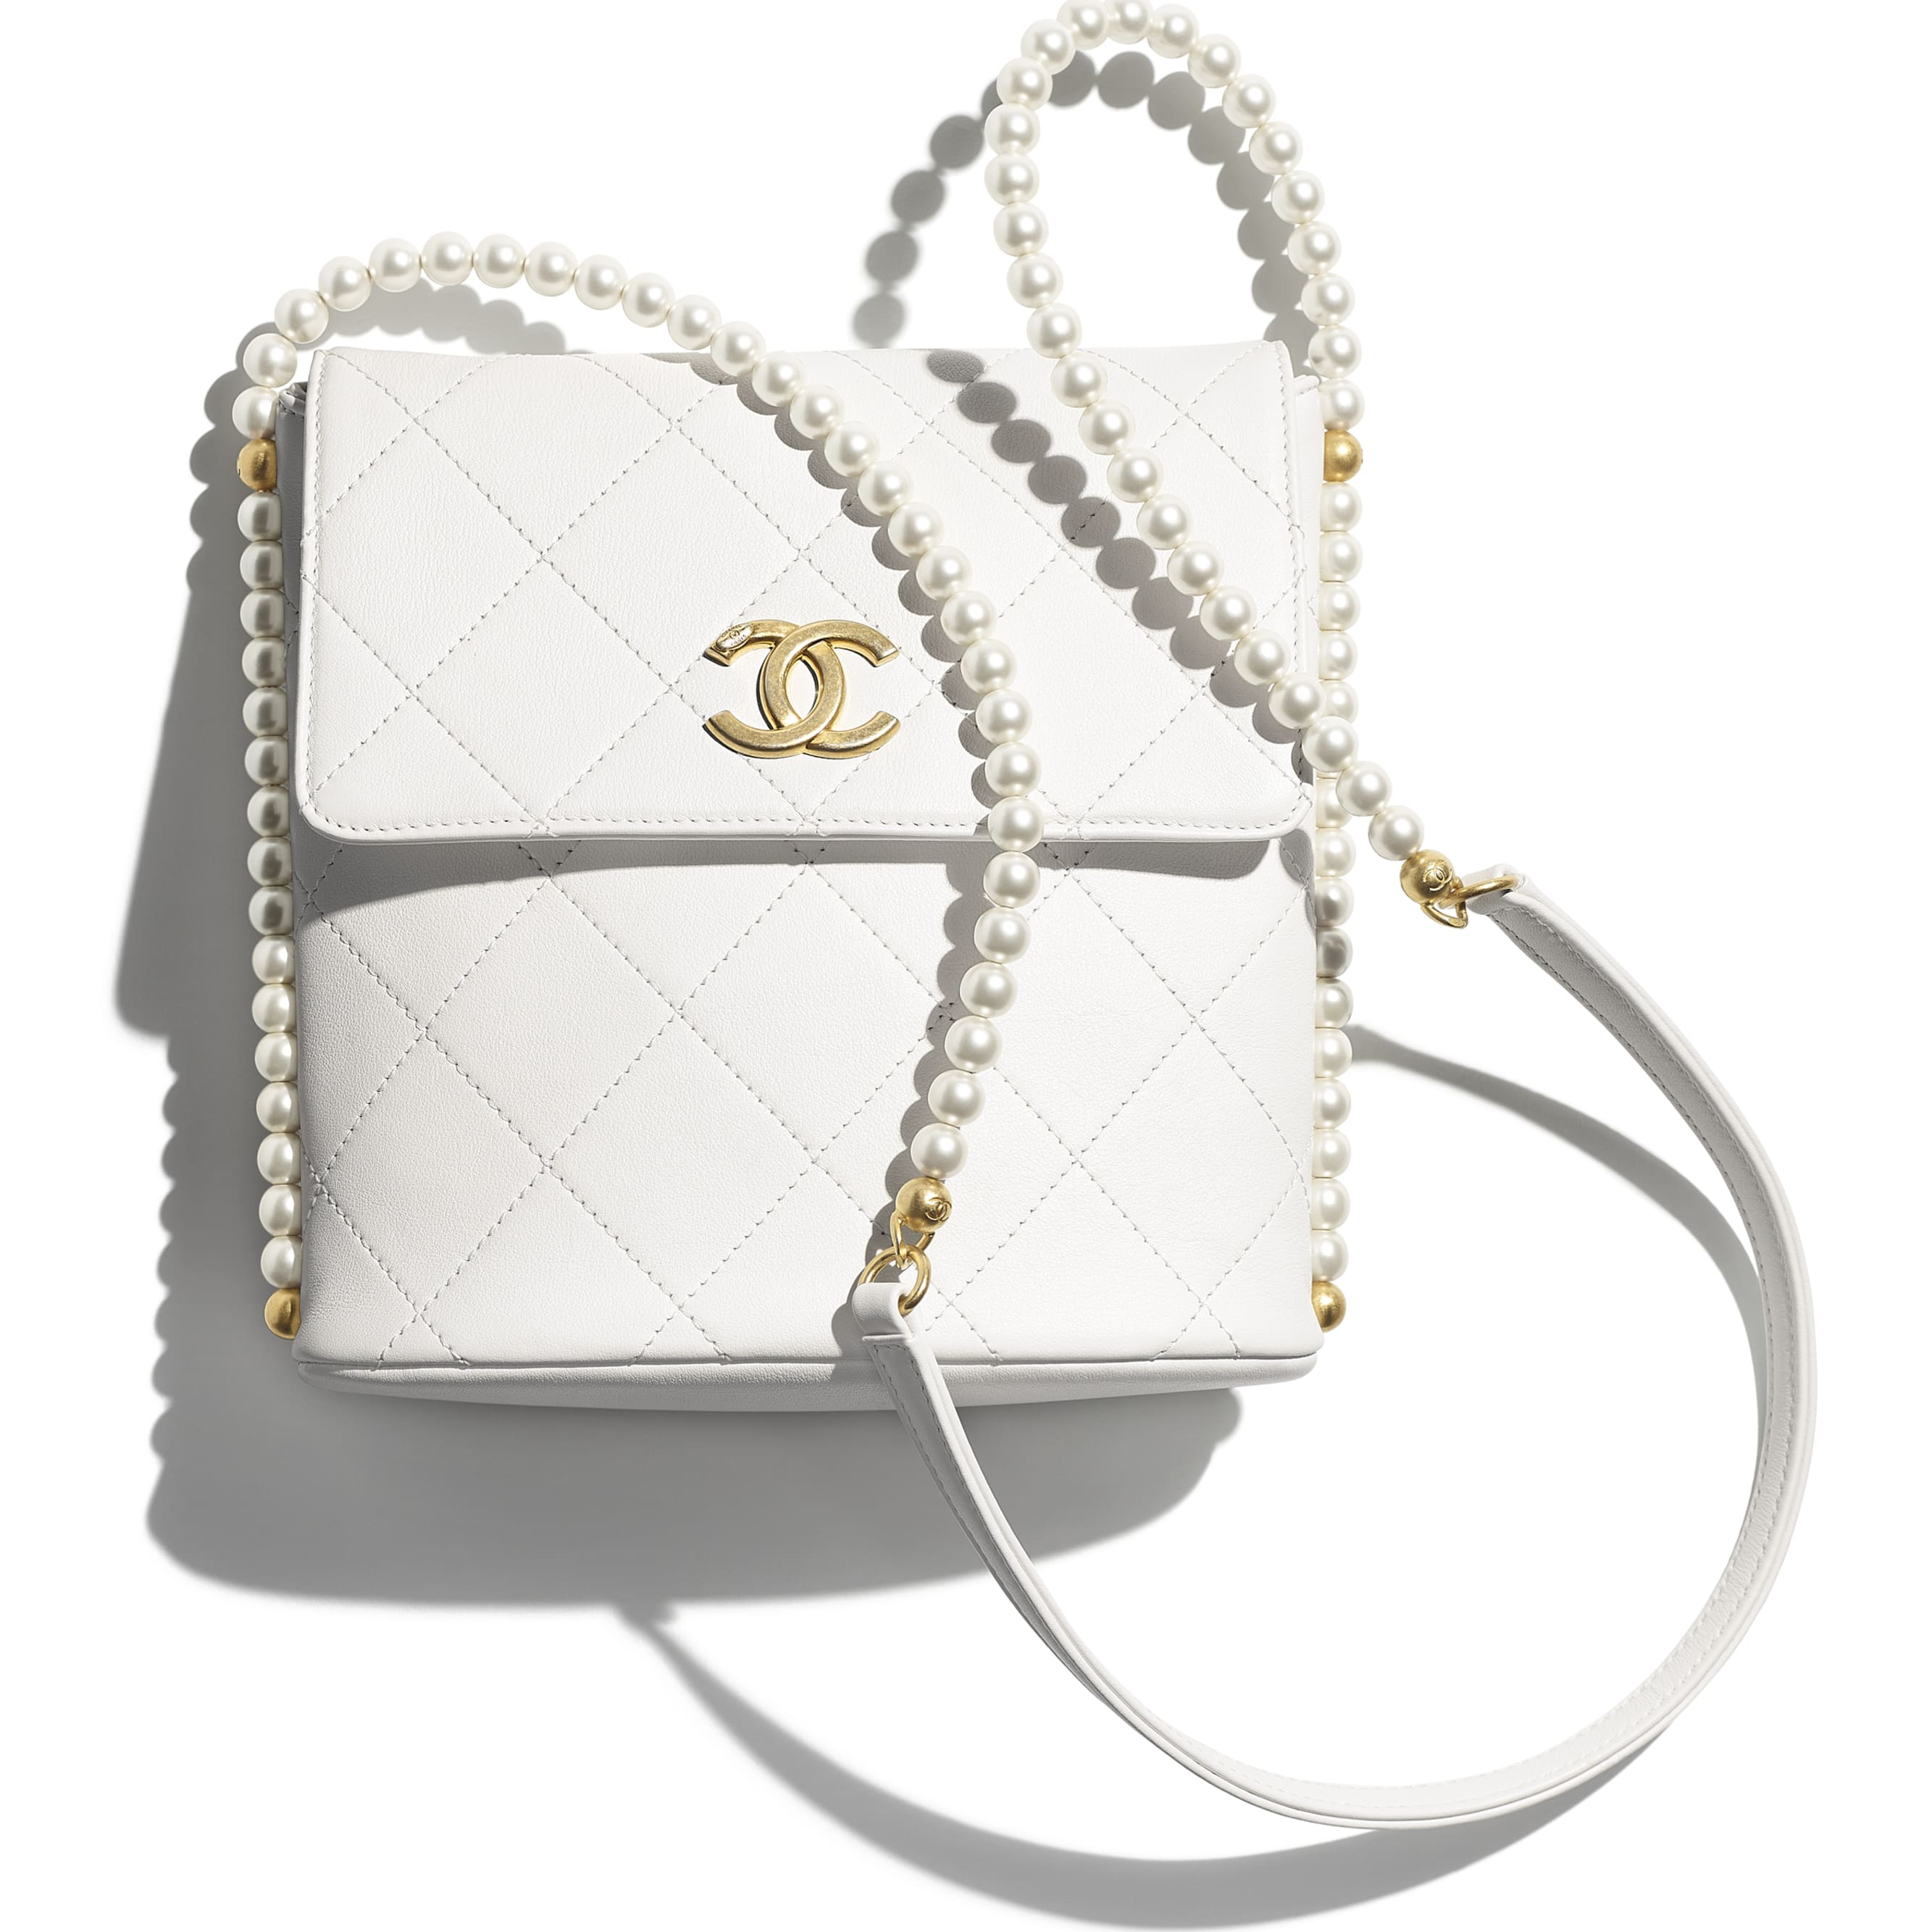 Small Hobo Bag - White - Calfskin, Imitation Pearls & Gold-Tone Metal - CHANEL - Extra view - see standard sized version